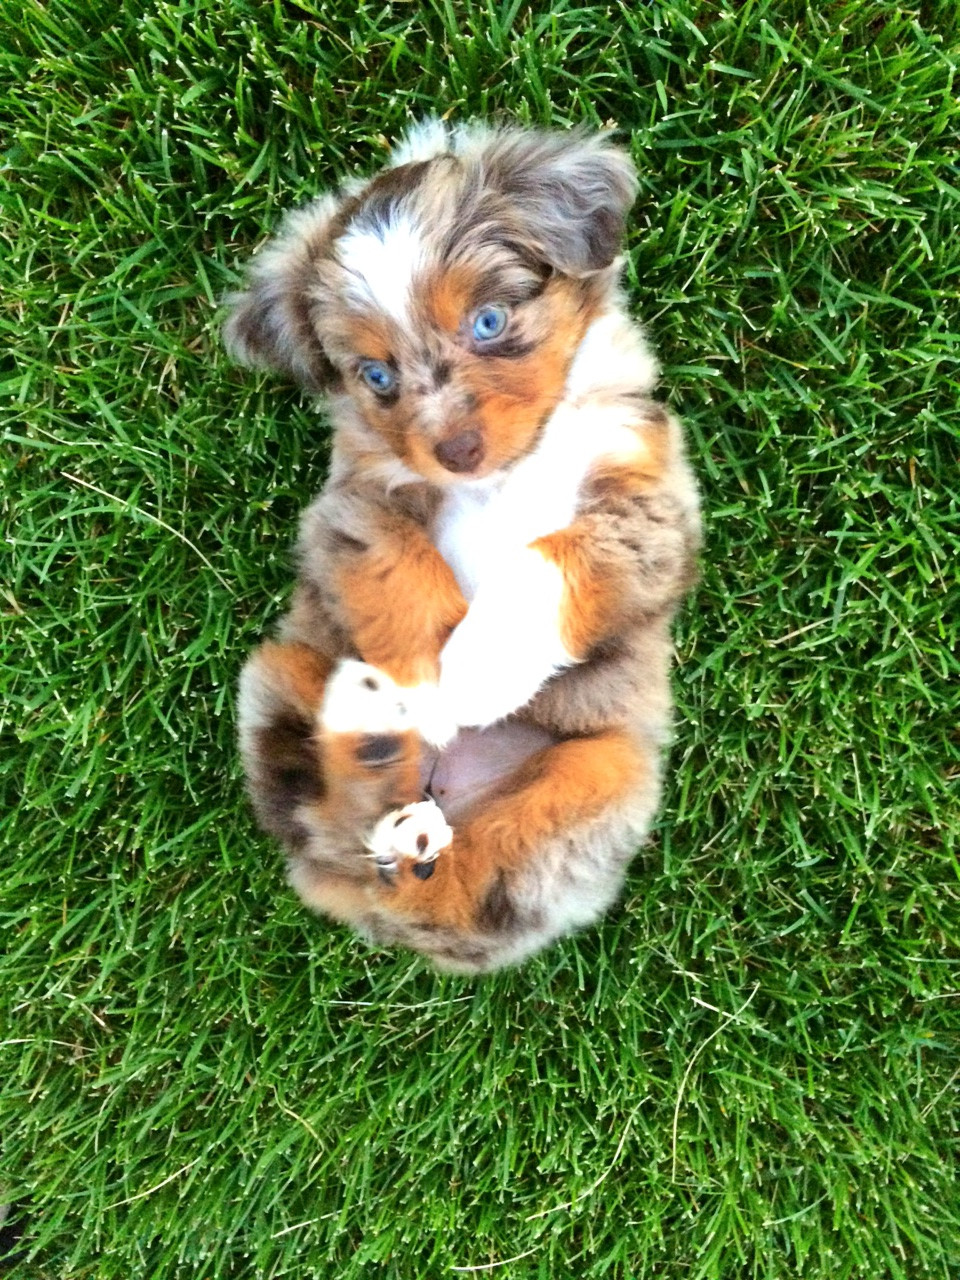 abdcdebfcb-mini-australian-shepherds-australian-shepherd-puppies-wallpaper-wp4402085